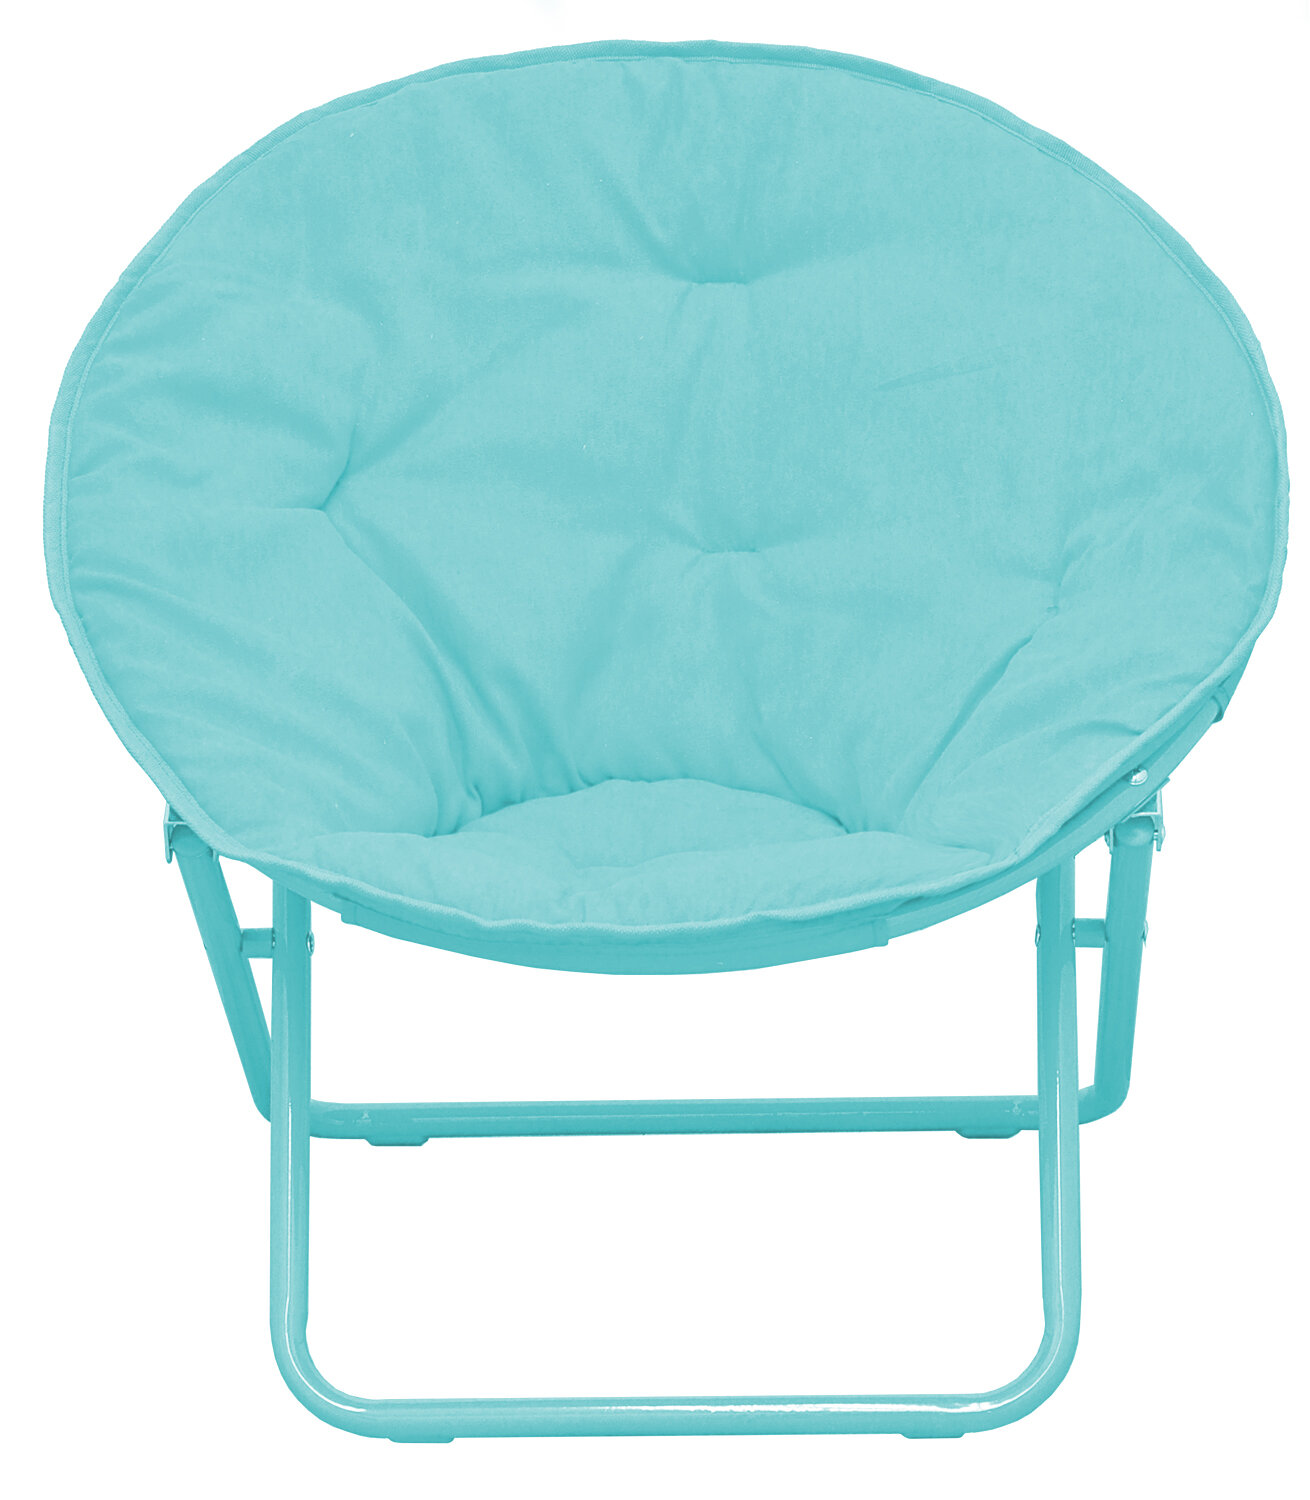 Harriet Bee Phillip Papasan Chair & Reviews